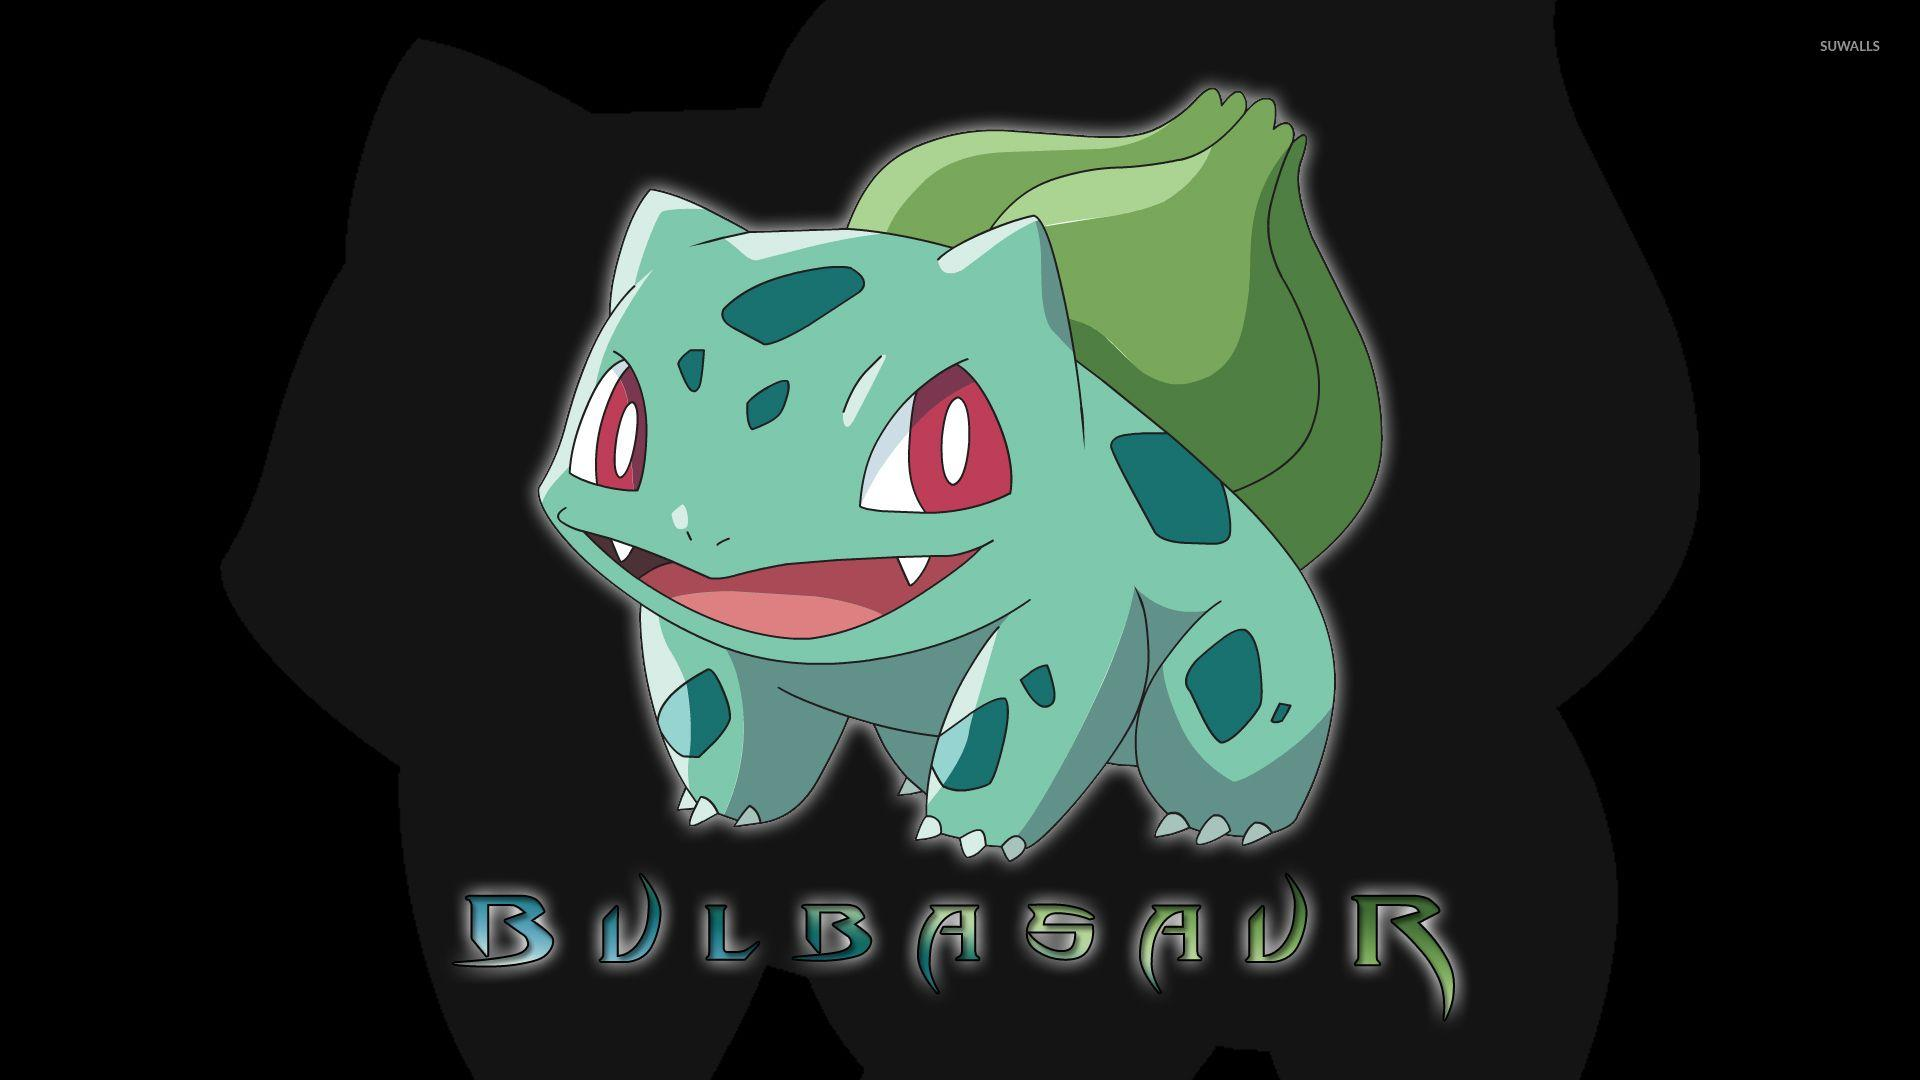 Bulbasaur in Pokemon wallpaper - Game wallpapers - #50496